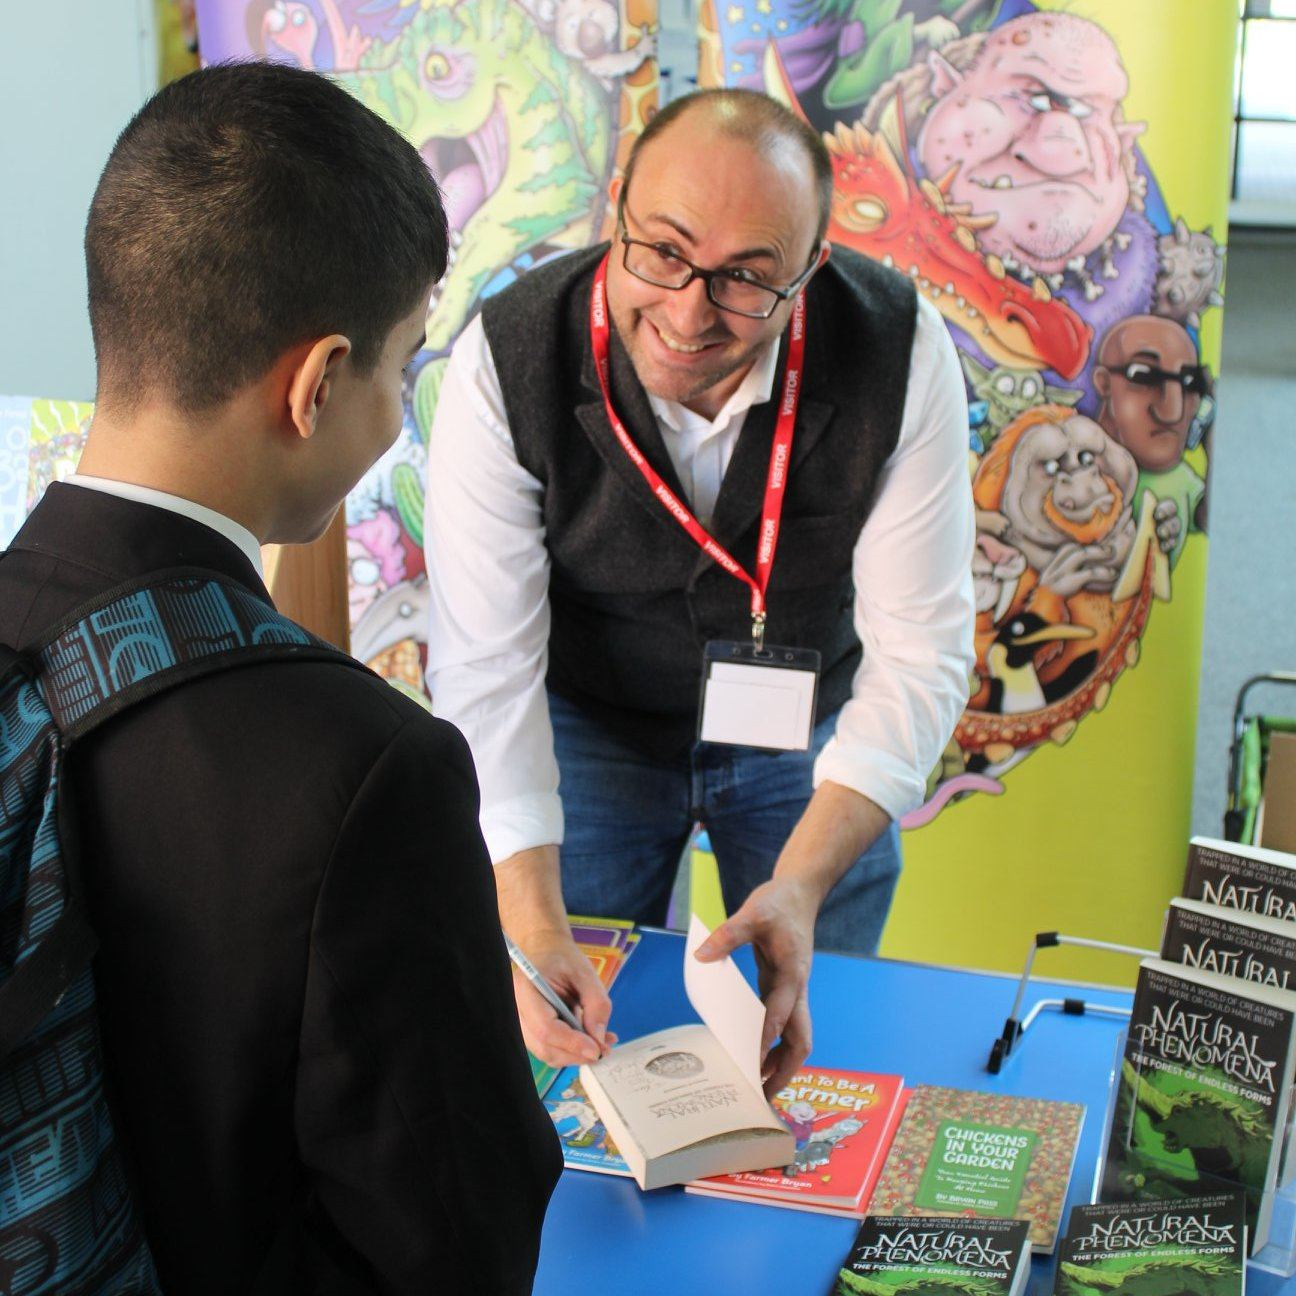 Book signing at Avon Valley School